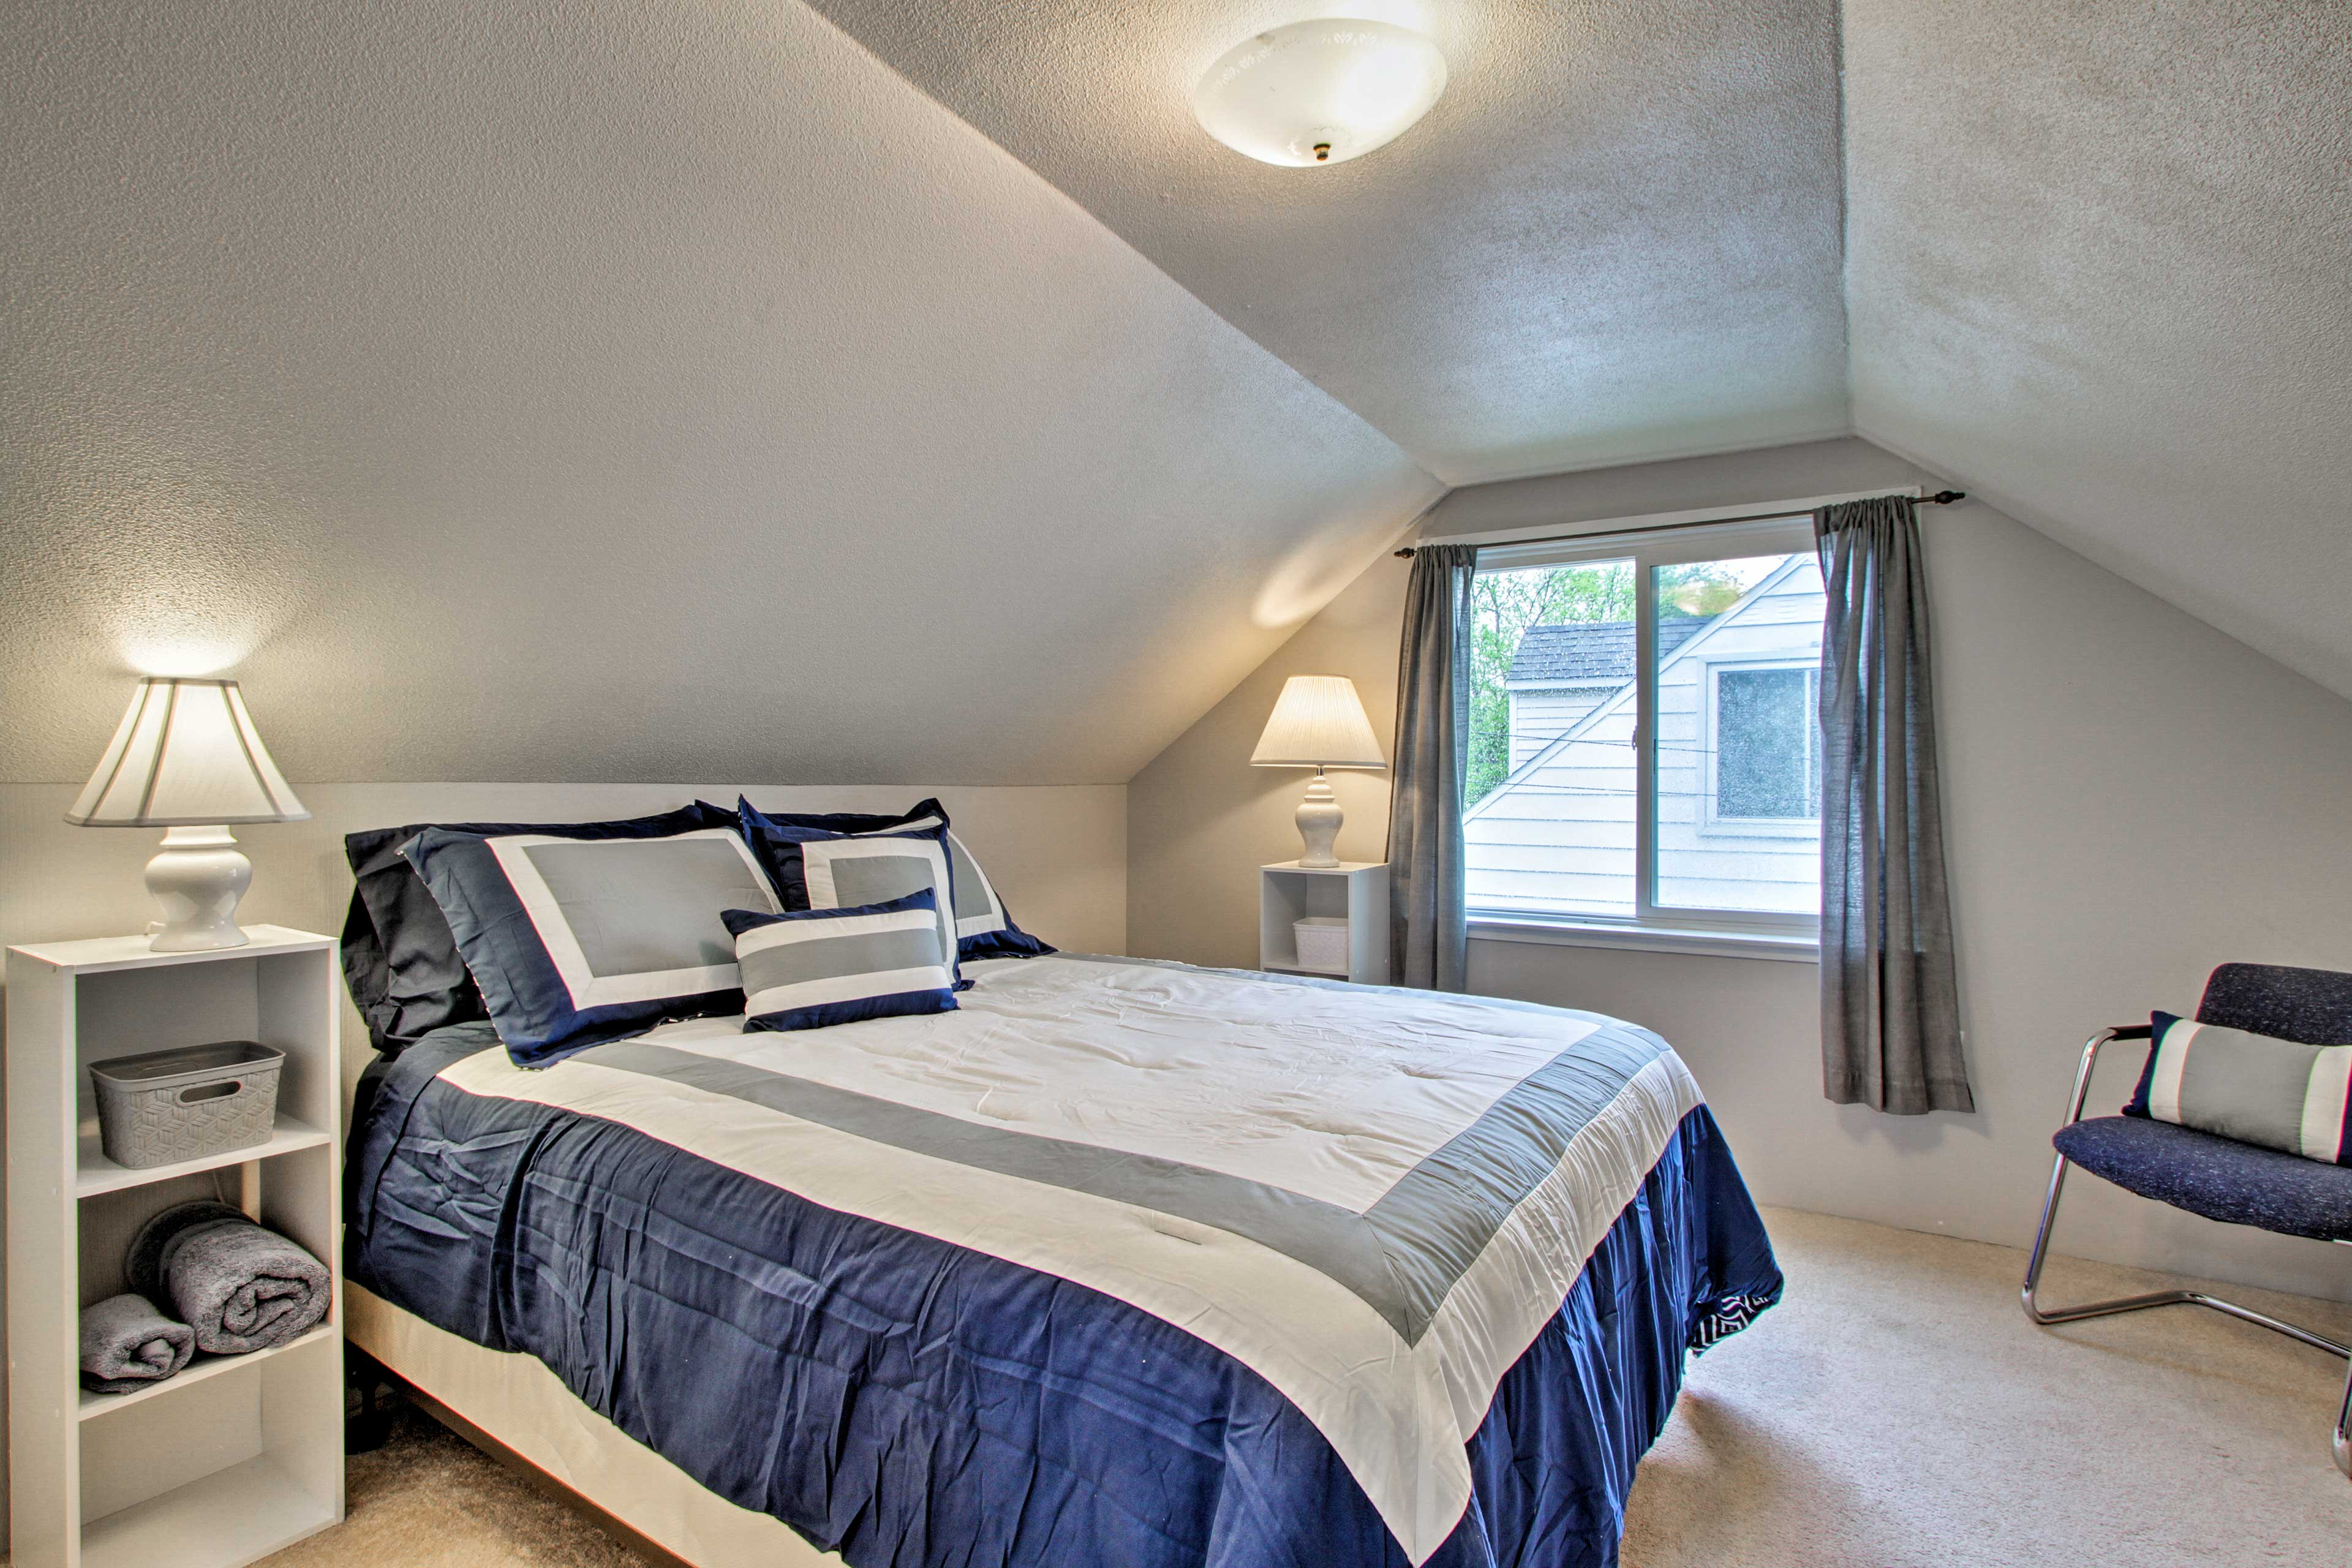 Head upstairs to access this bedroom.